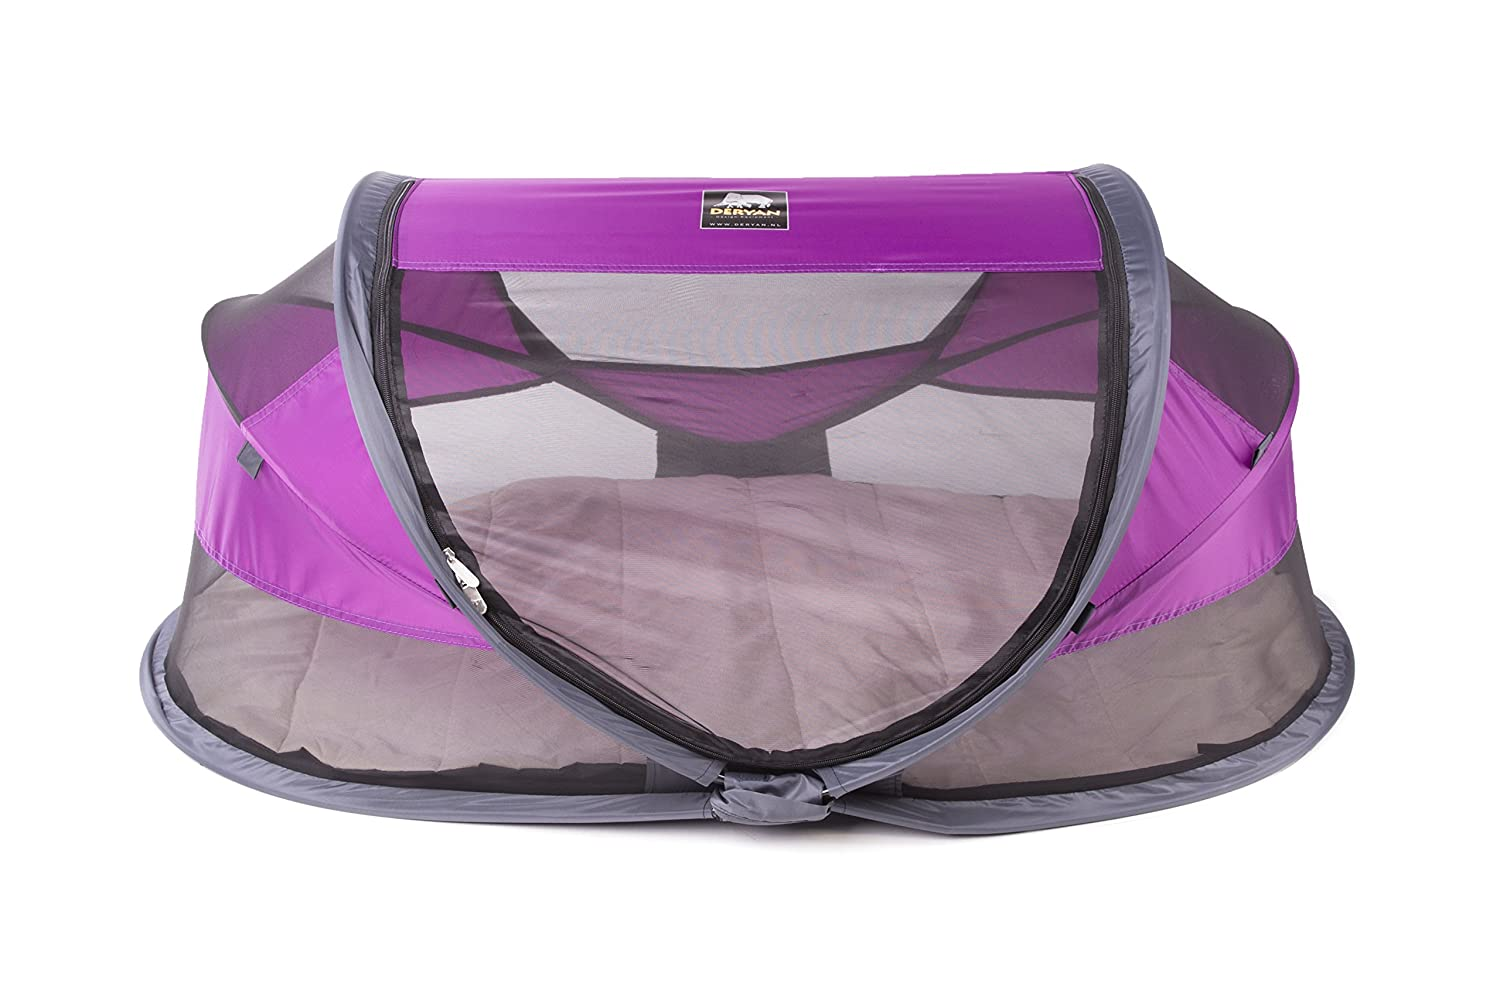 Deryan Travel Cot Bébé Luxe Pourpre BL-PURPLE